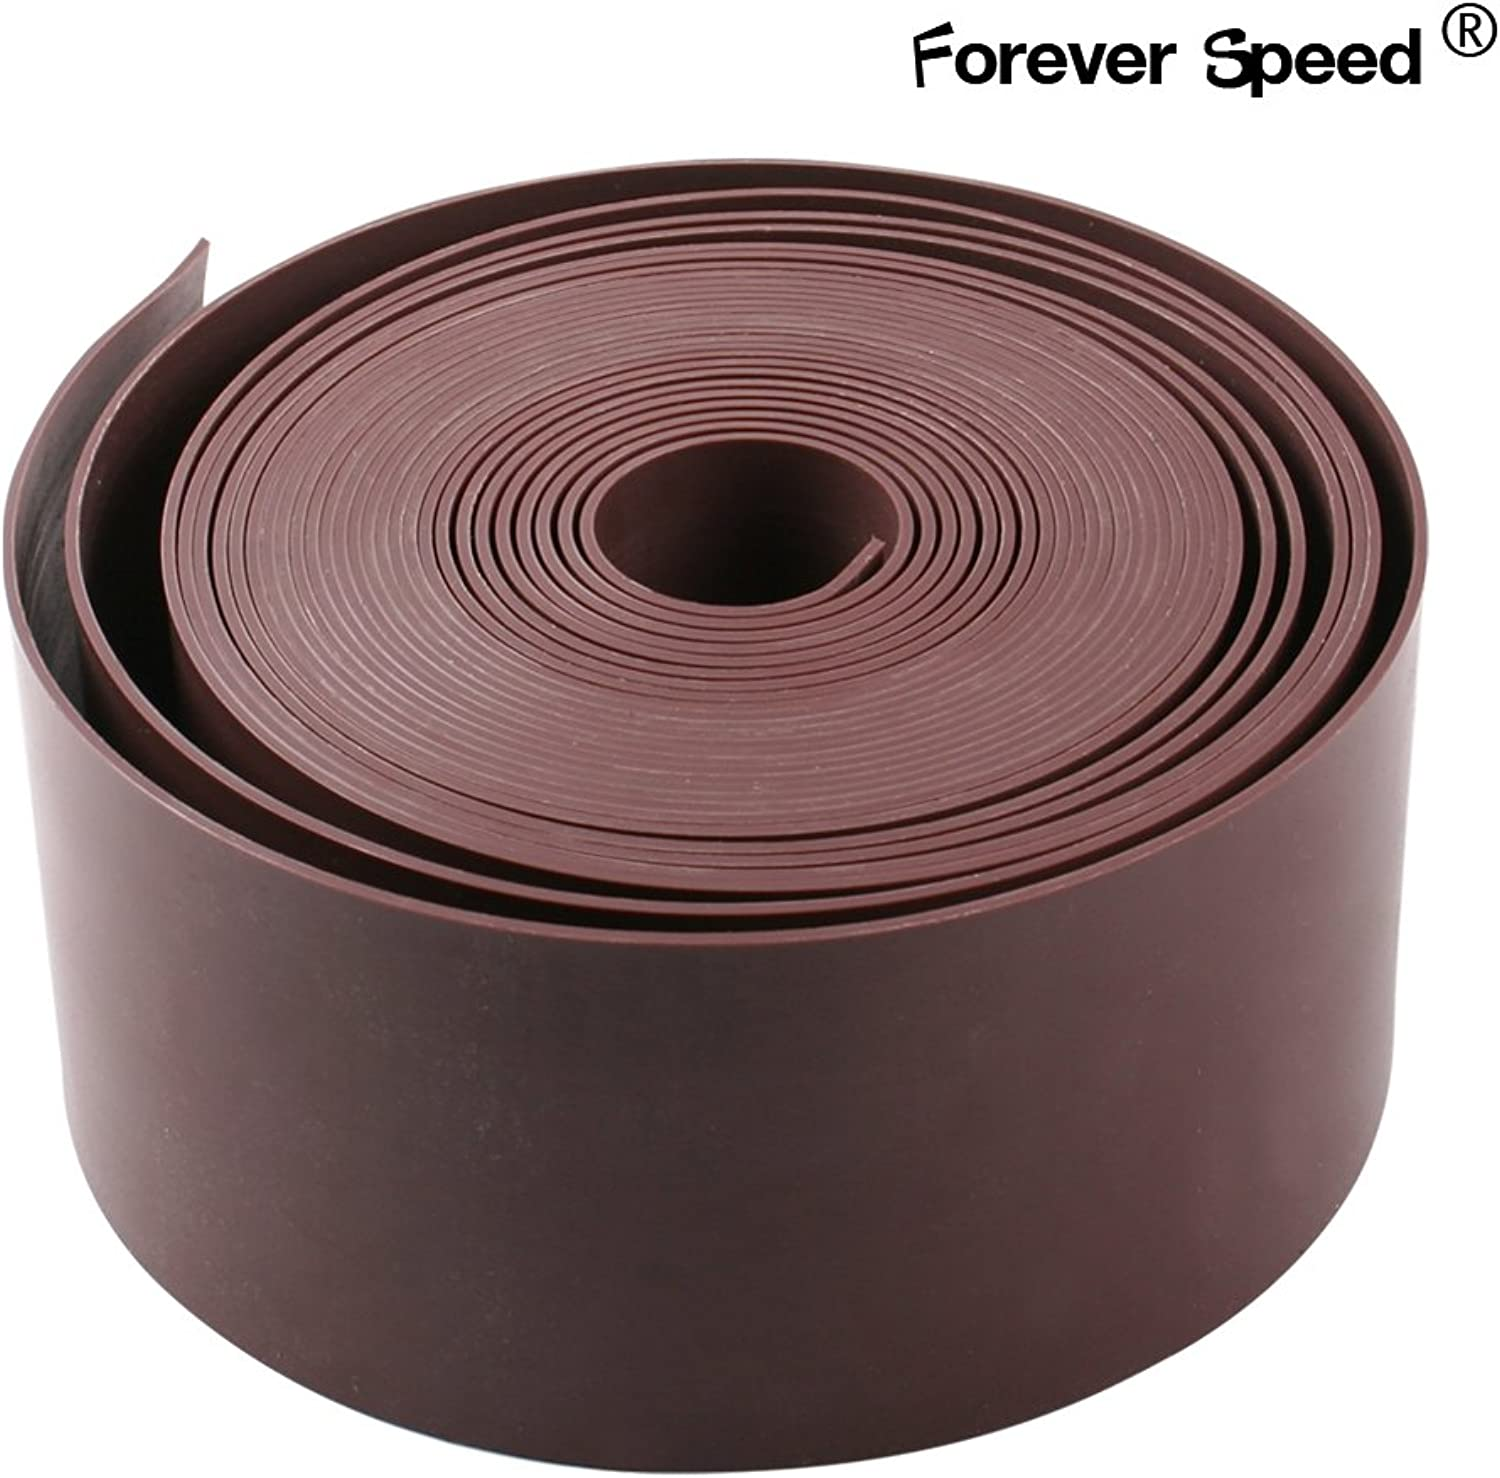 Forever Speed Garden Lawn Edge Fence PE 2mm Thick Brown 50mx10cm (LxH)